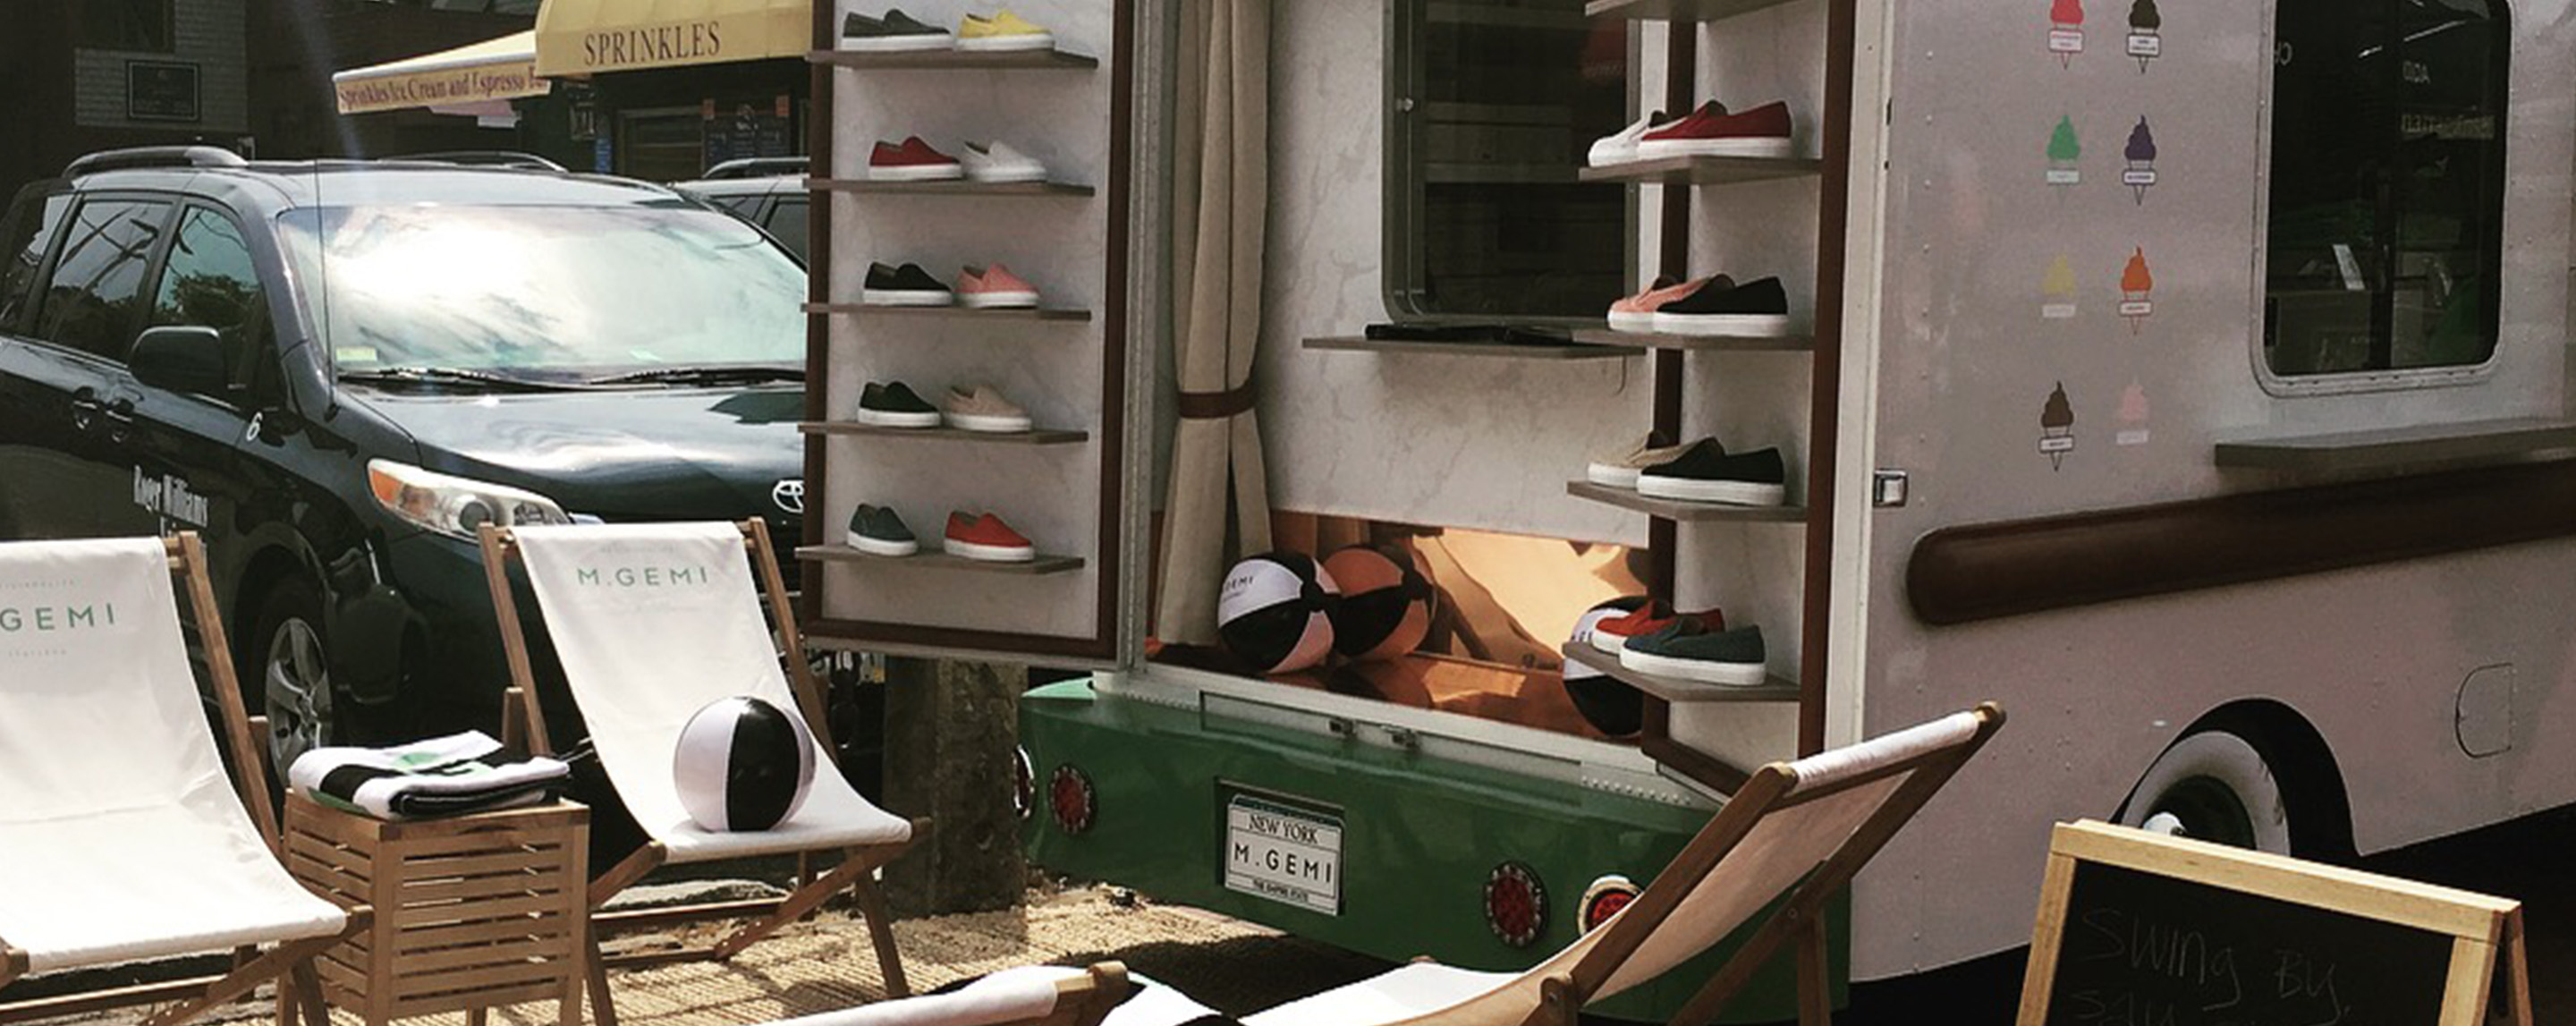 Vintage truck selling Italian shoes.